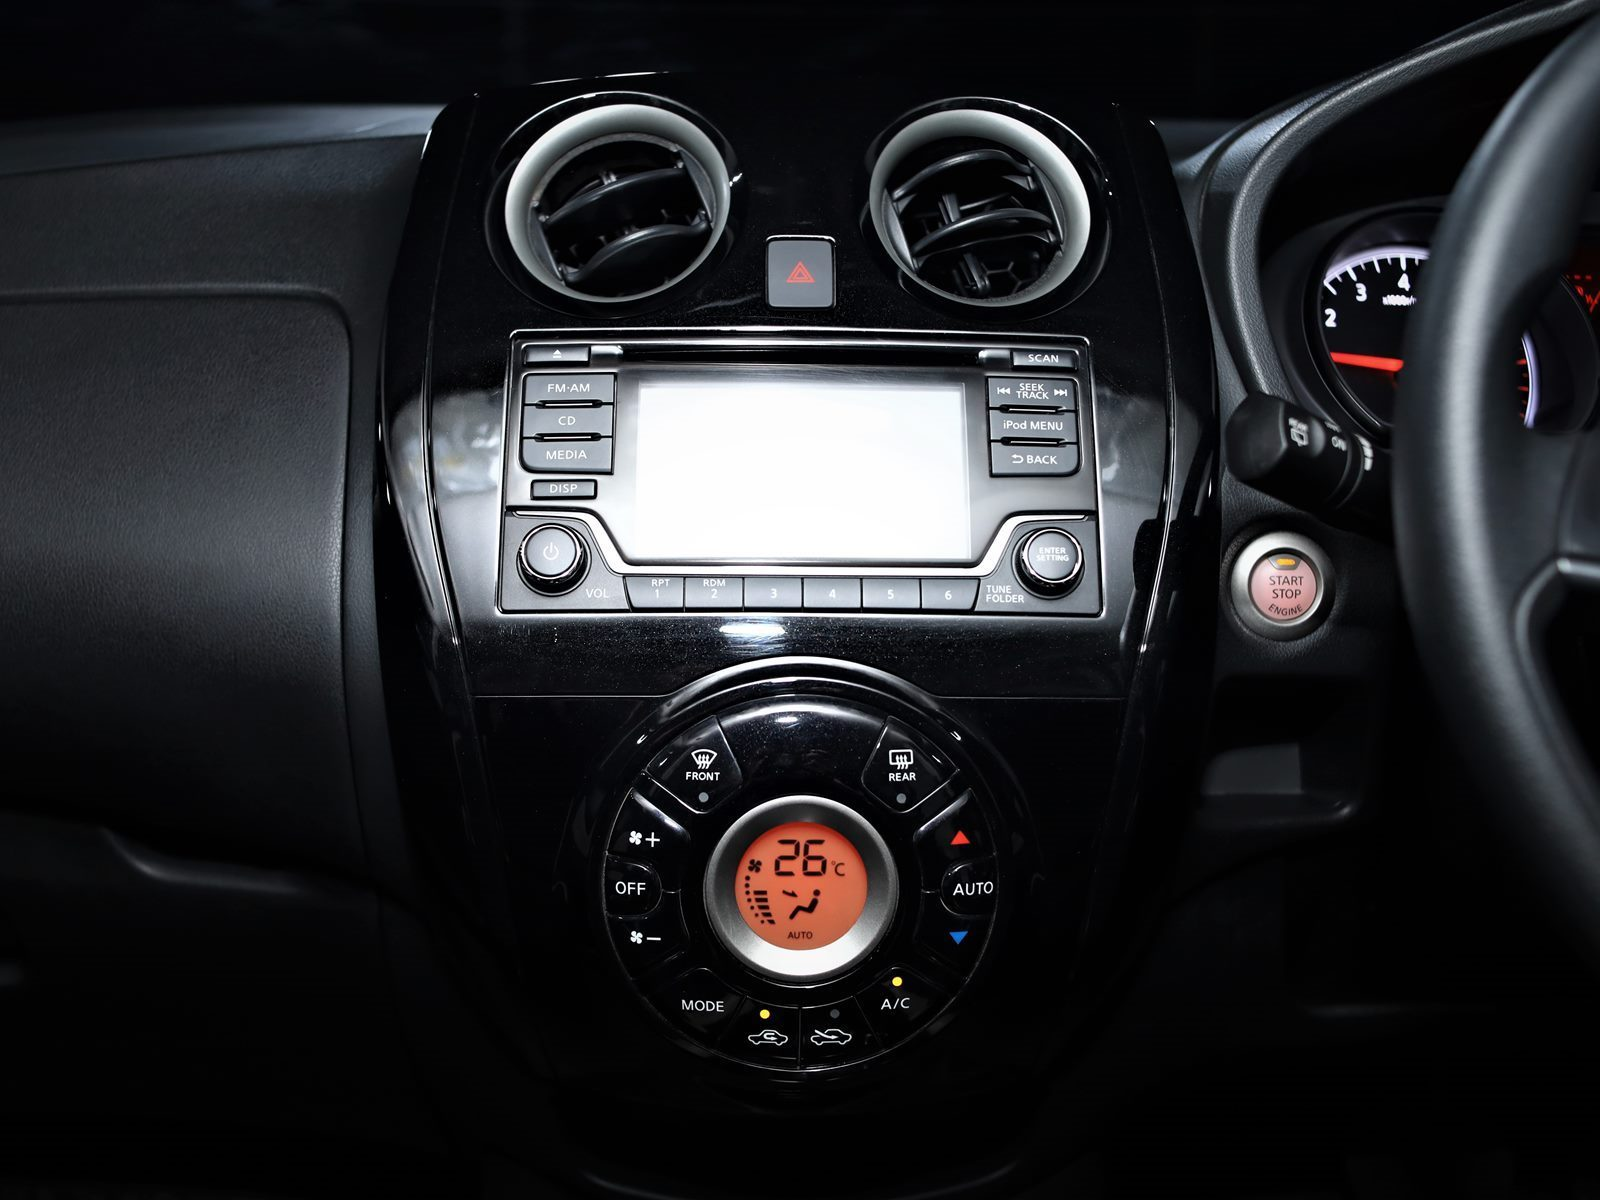 NISSAN NOTE 1.2 V A/T  2018 9กง3014